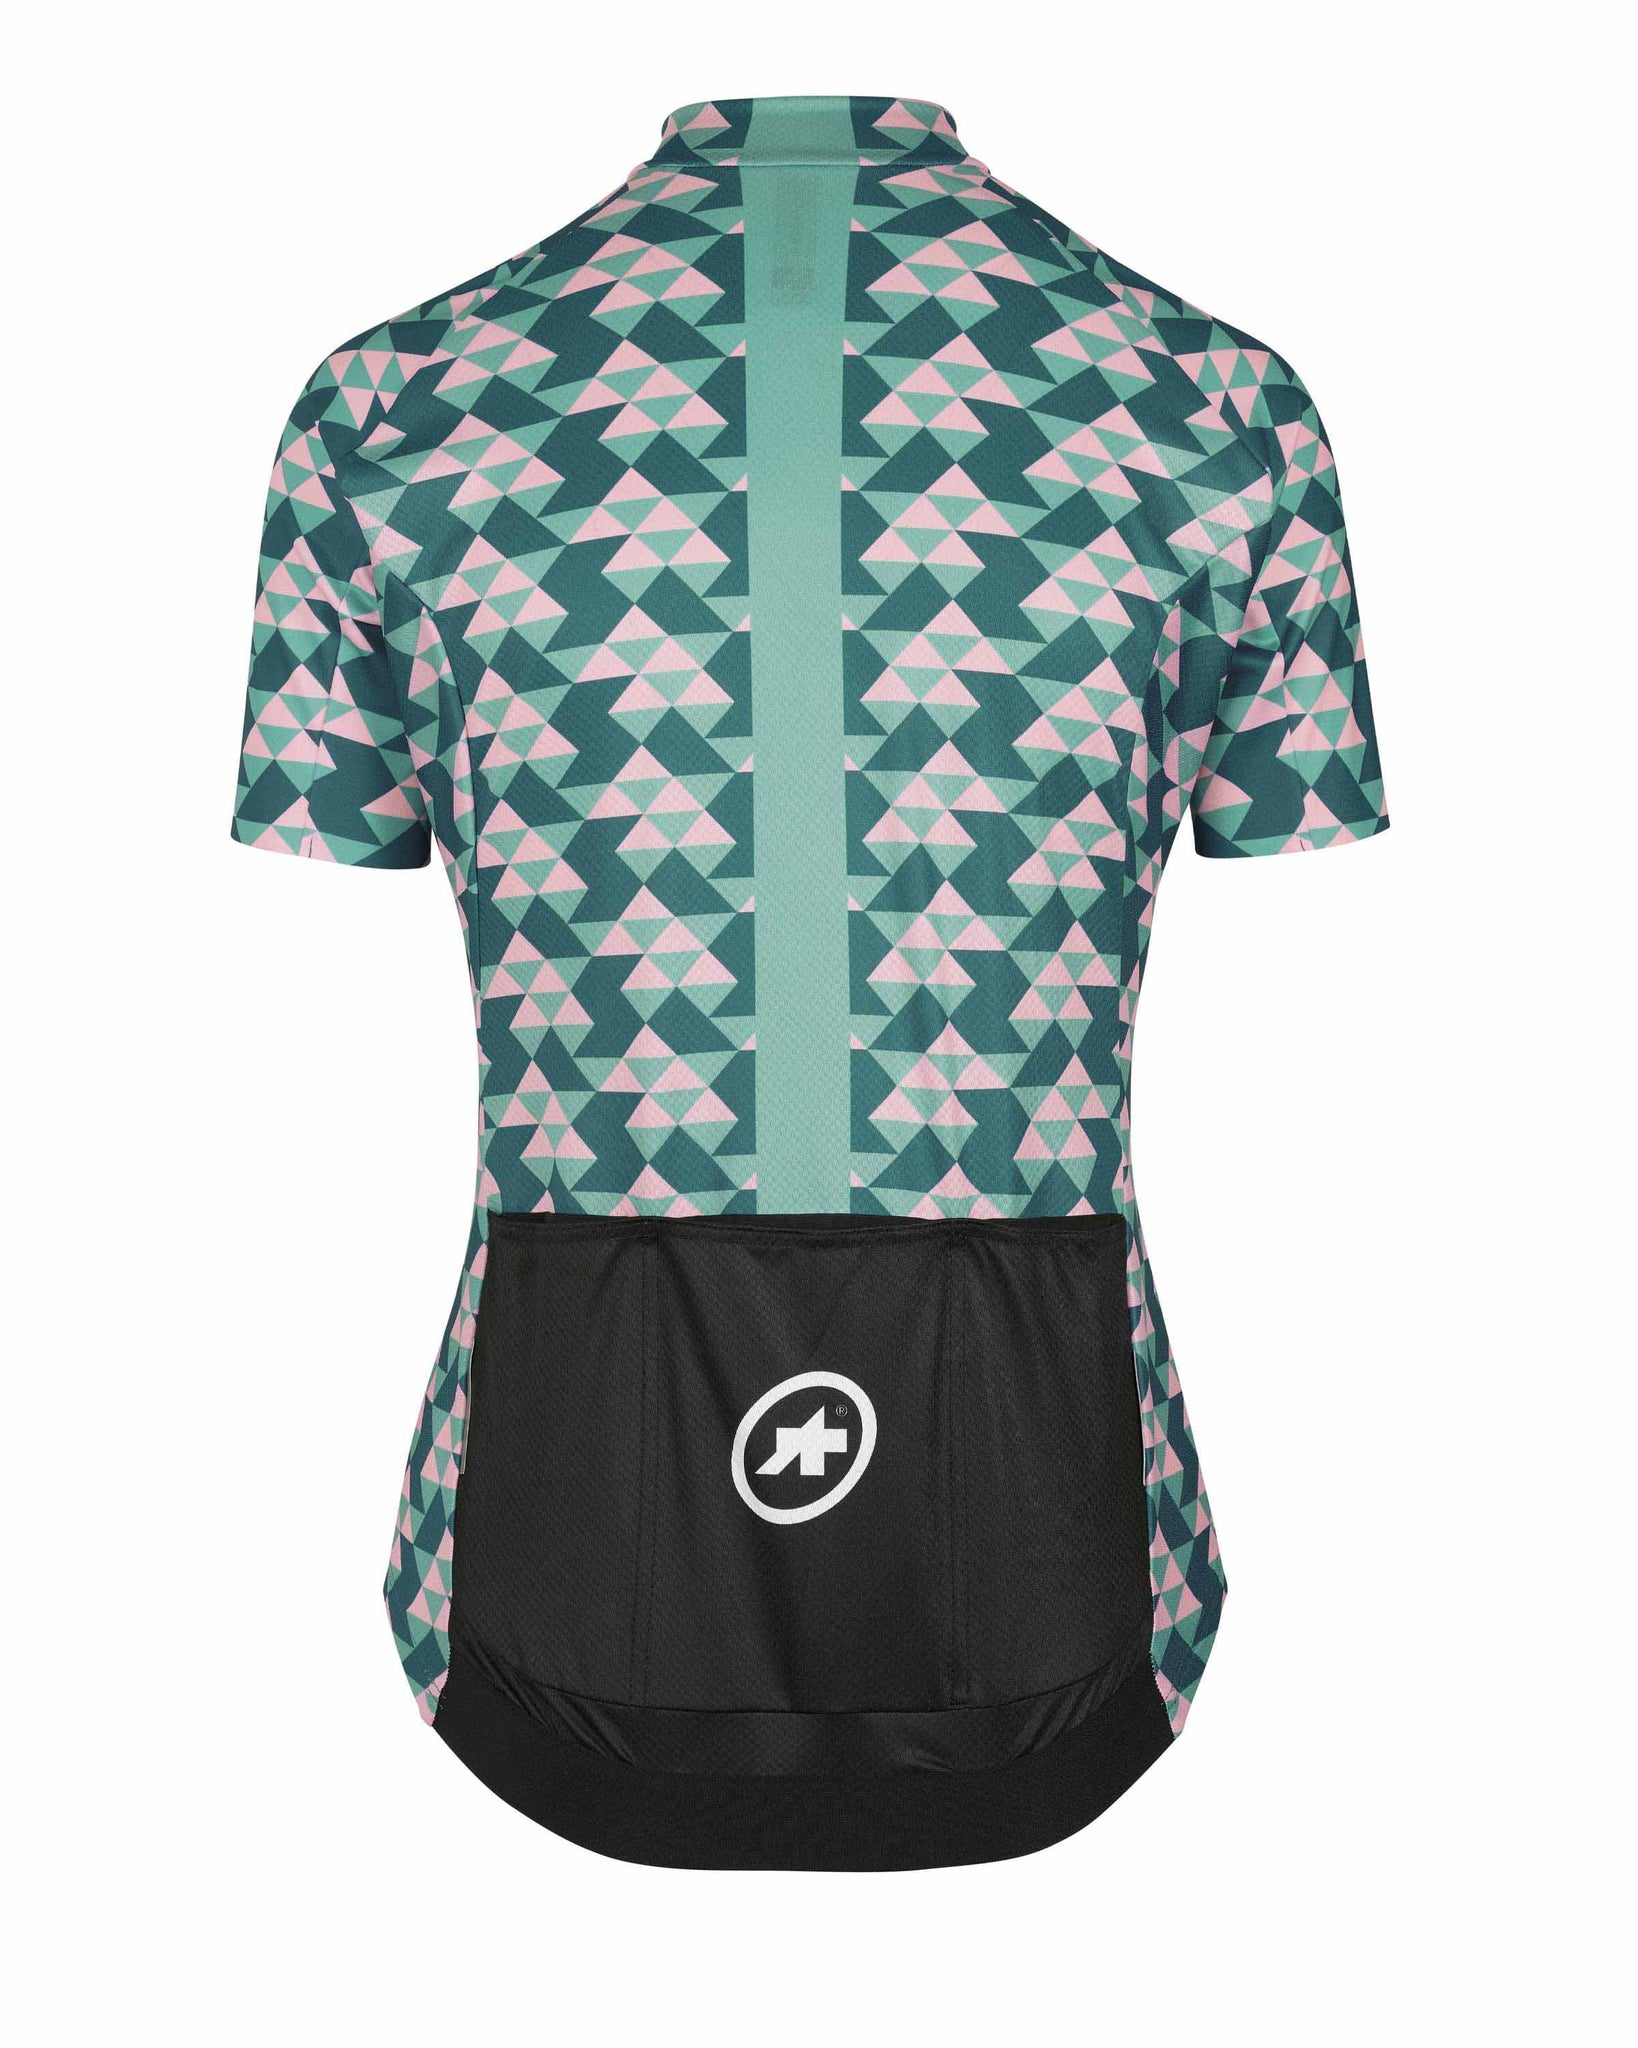 SALE【ASSOS / アソス】DIAMOND CRAZY WOMEN'S SS JERSEY brilliant green(レディース 半袖ジャージ)